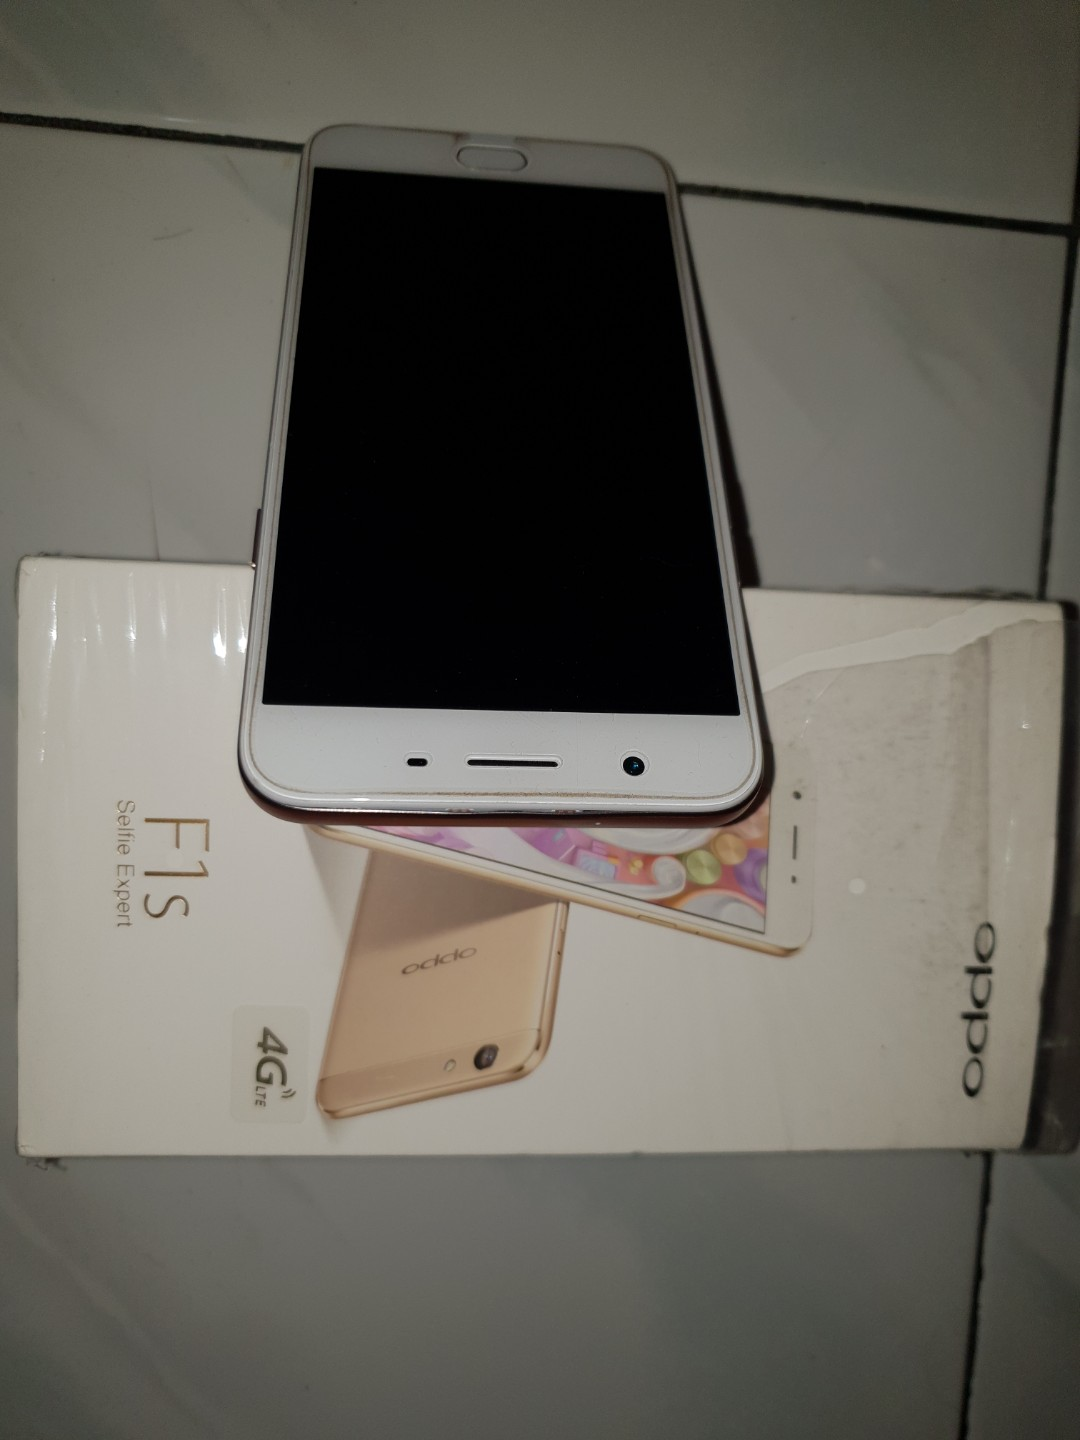 Dijual Handphone Oppo F1s Selfie Expert Mobile Phones Tablets Tablet Accessories On Carousell